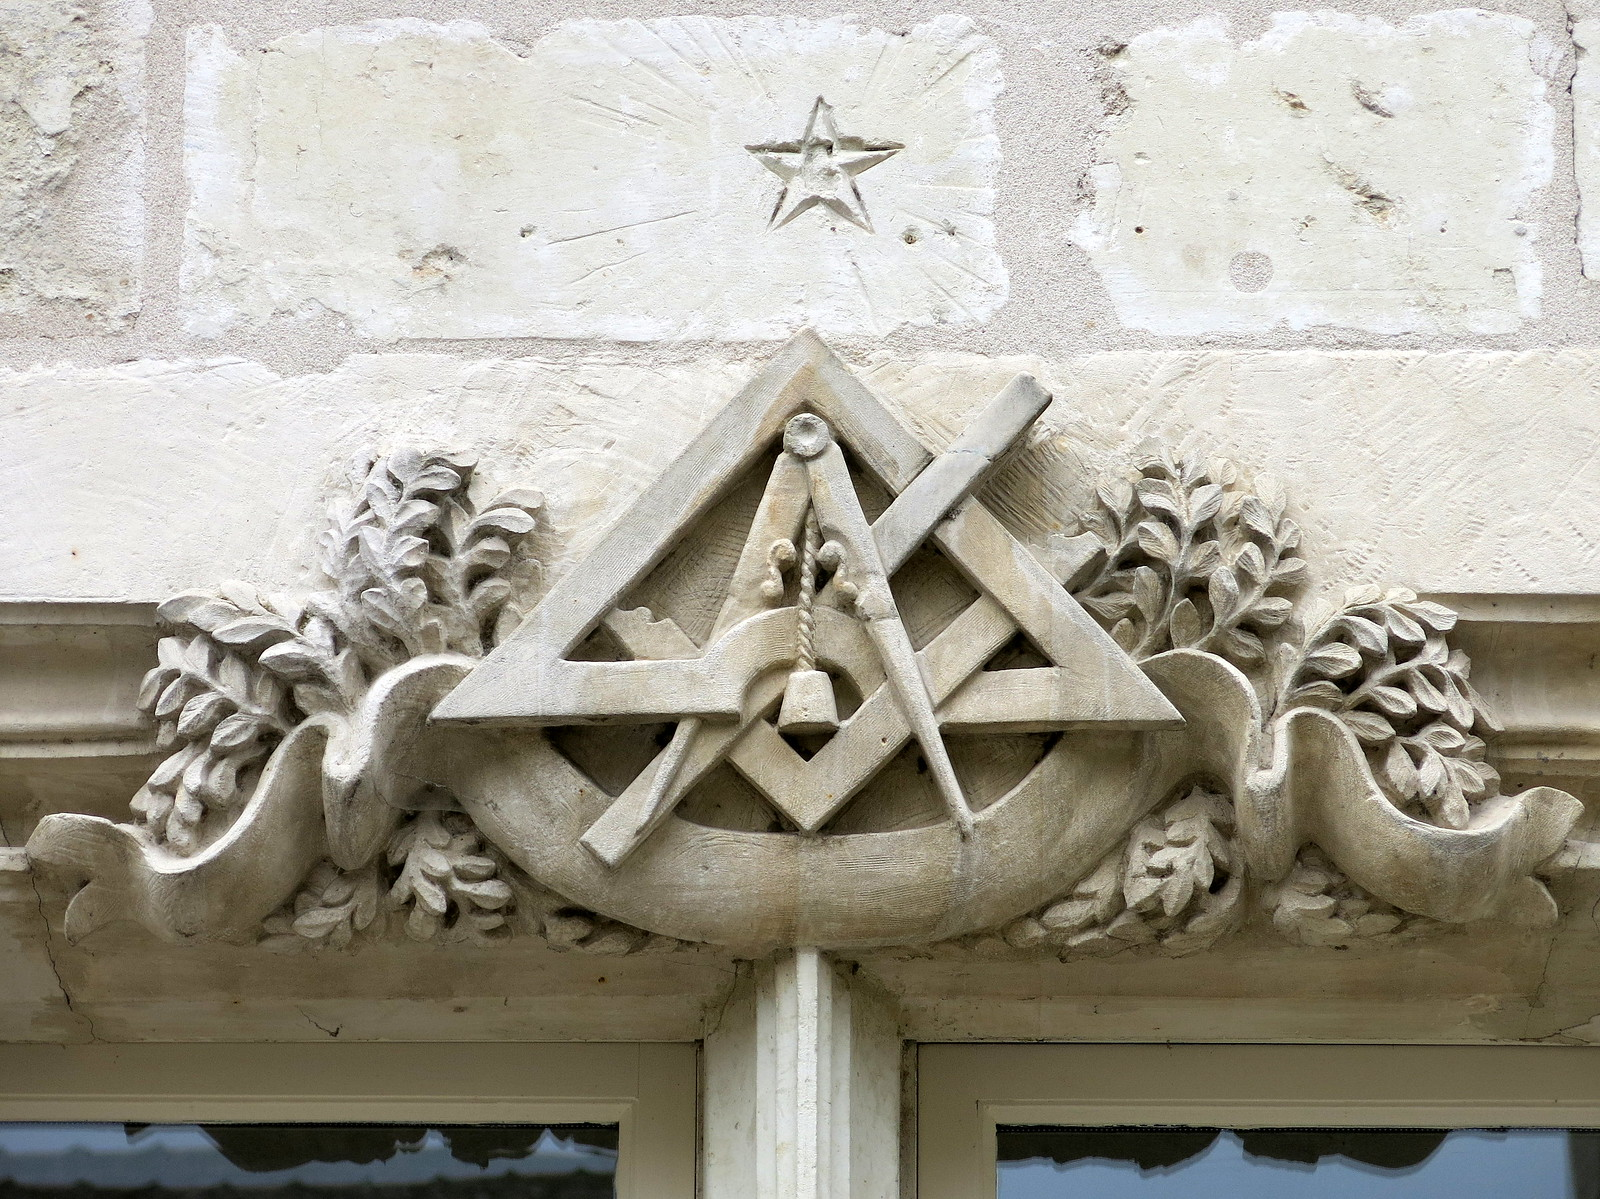 Masonic symbols carved above a doorway, Chinon, France